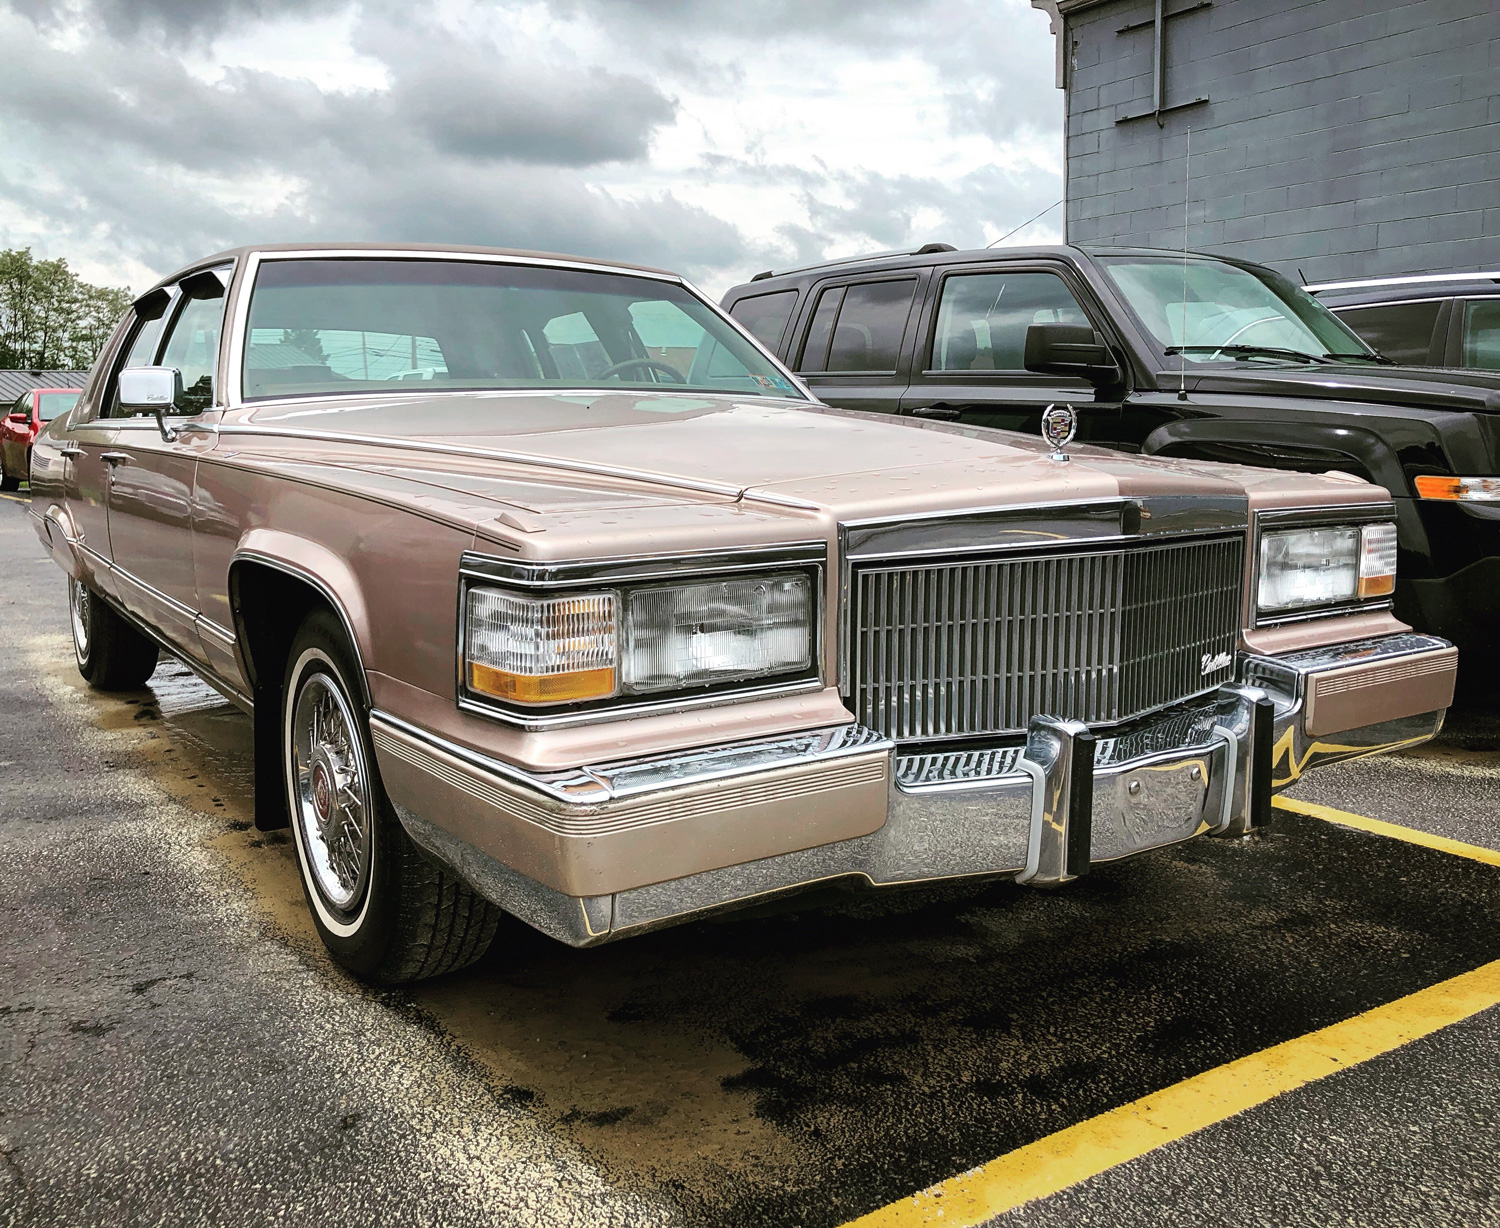 1992 Cadillac Brougham front 3/4